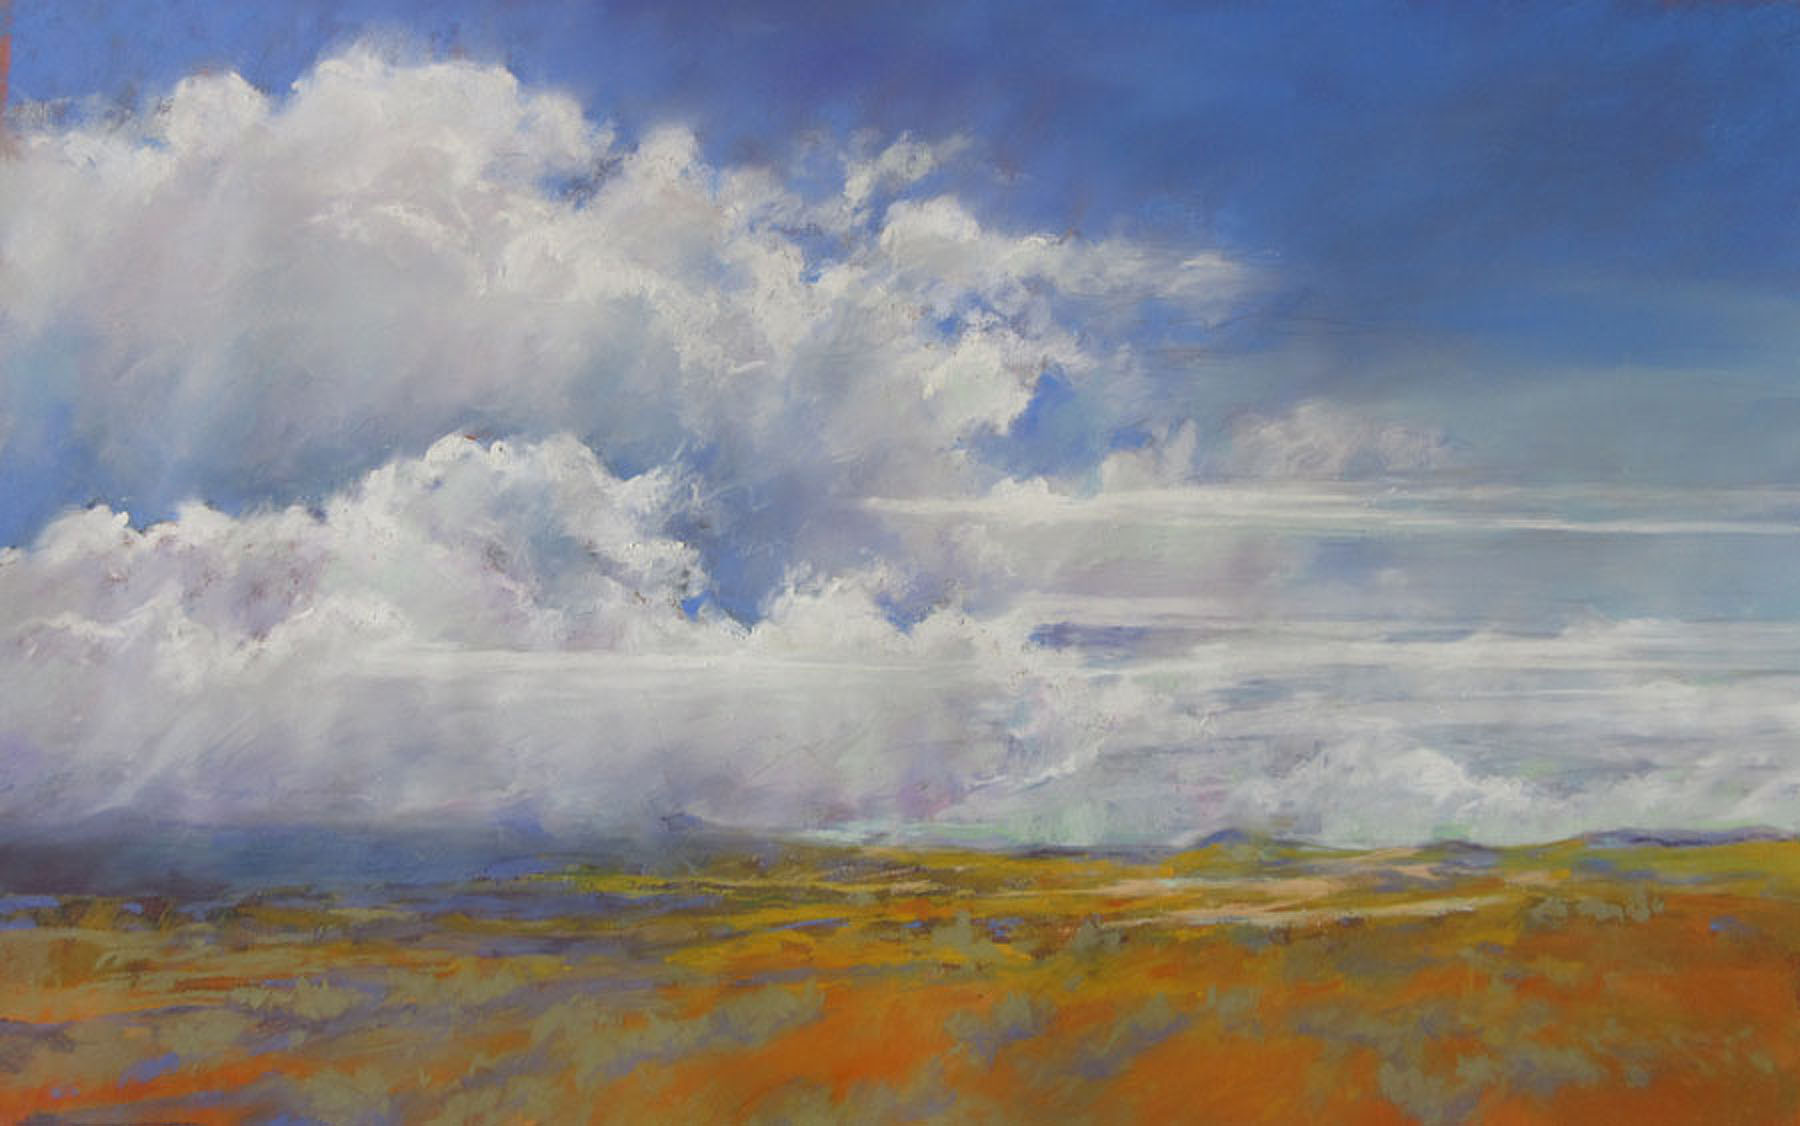 Whispering Clouds 2